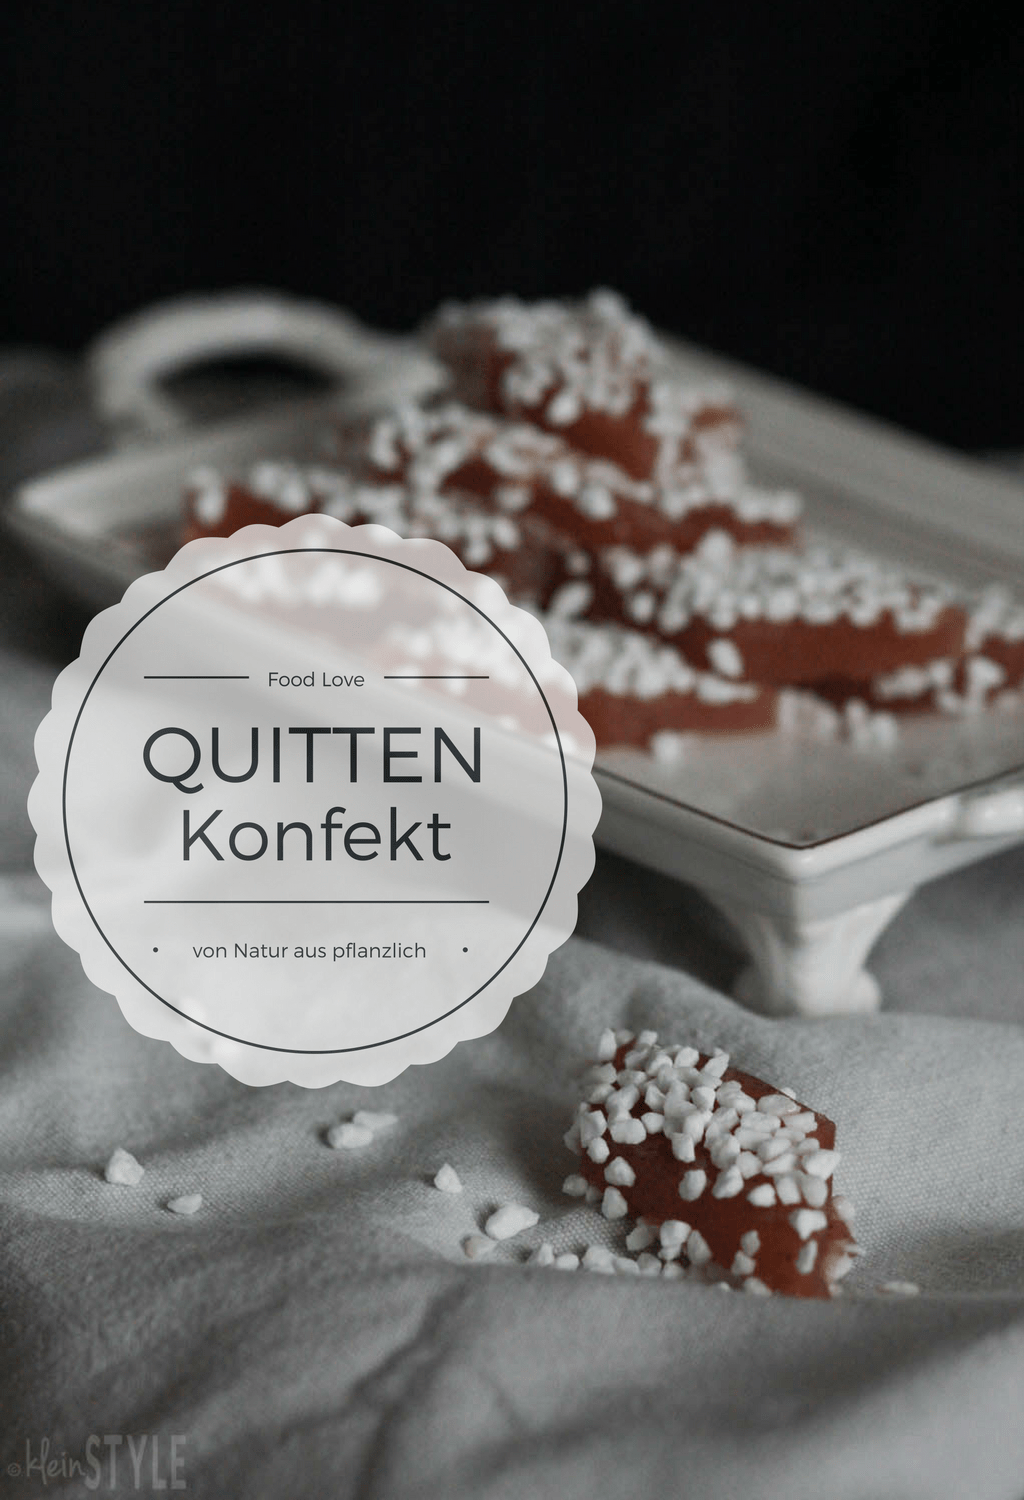 Food Love Friday : Quittenkonfekt-Rauten